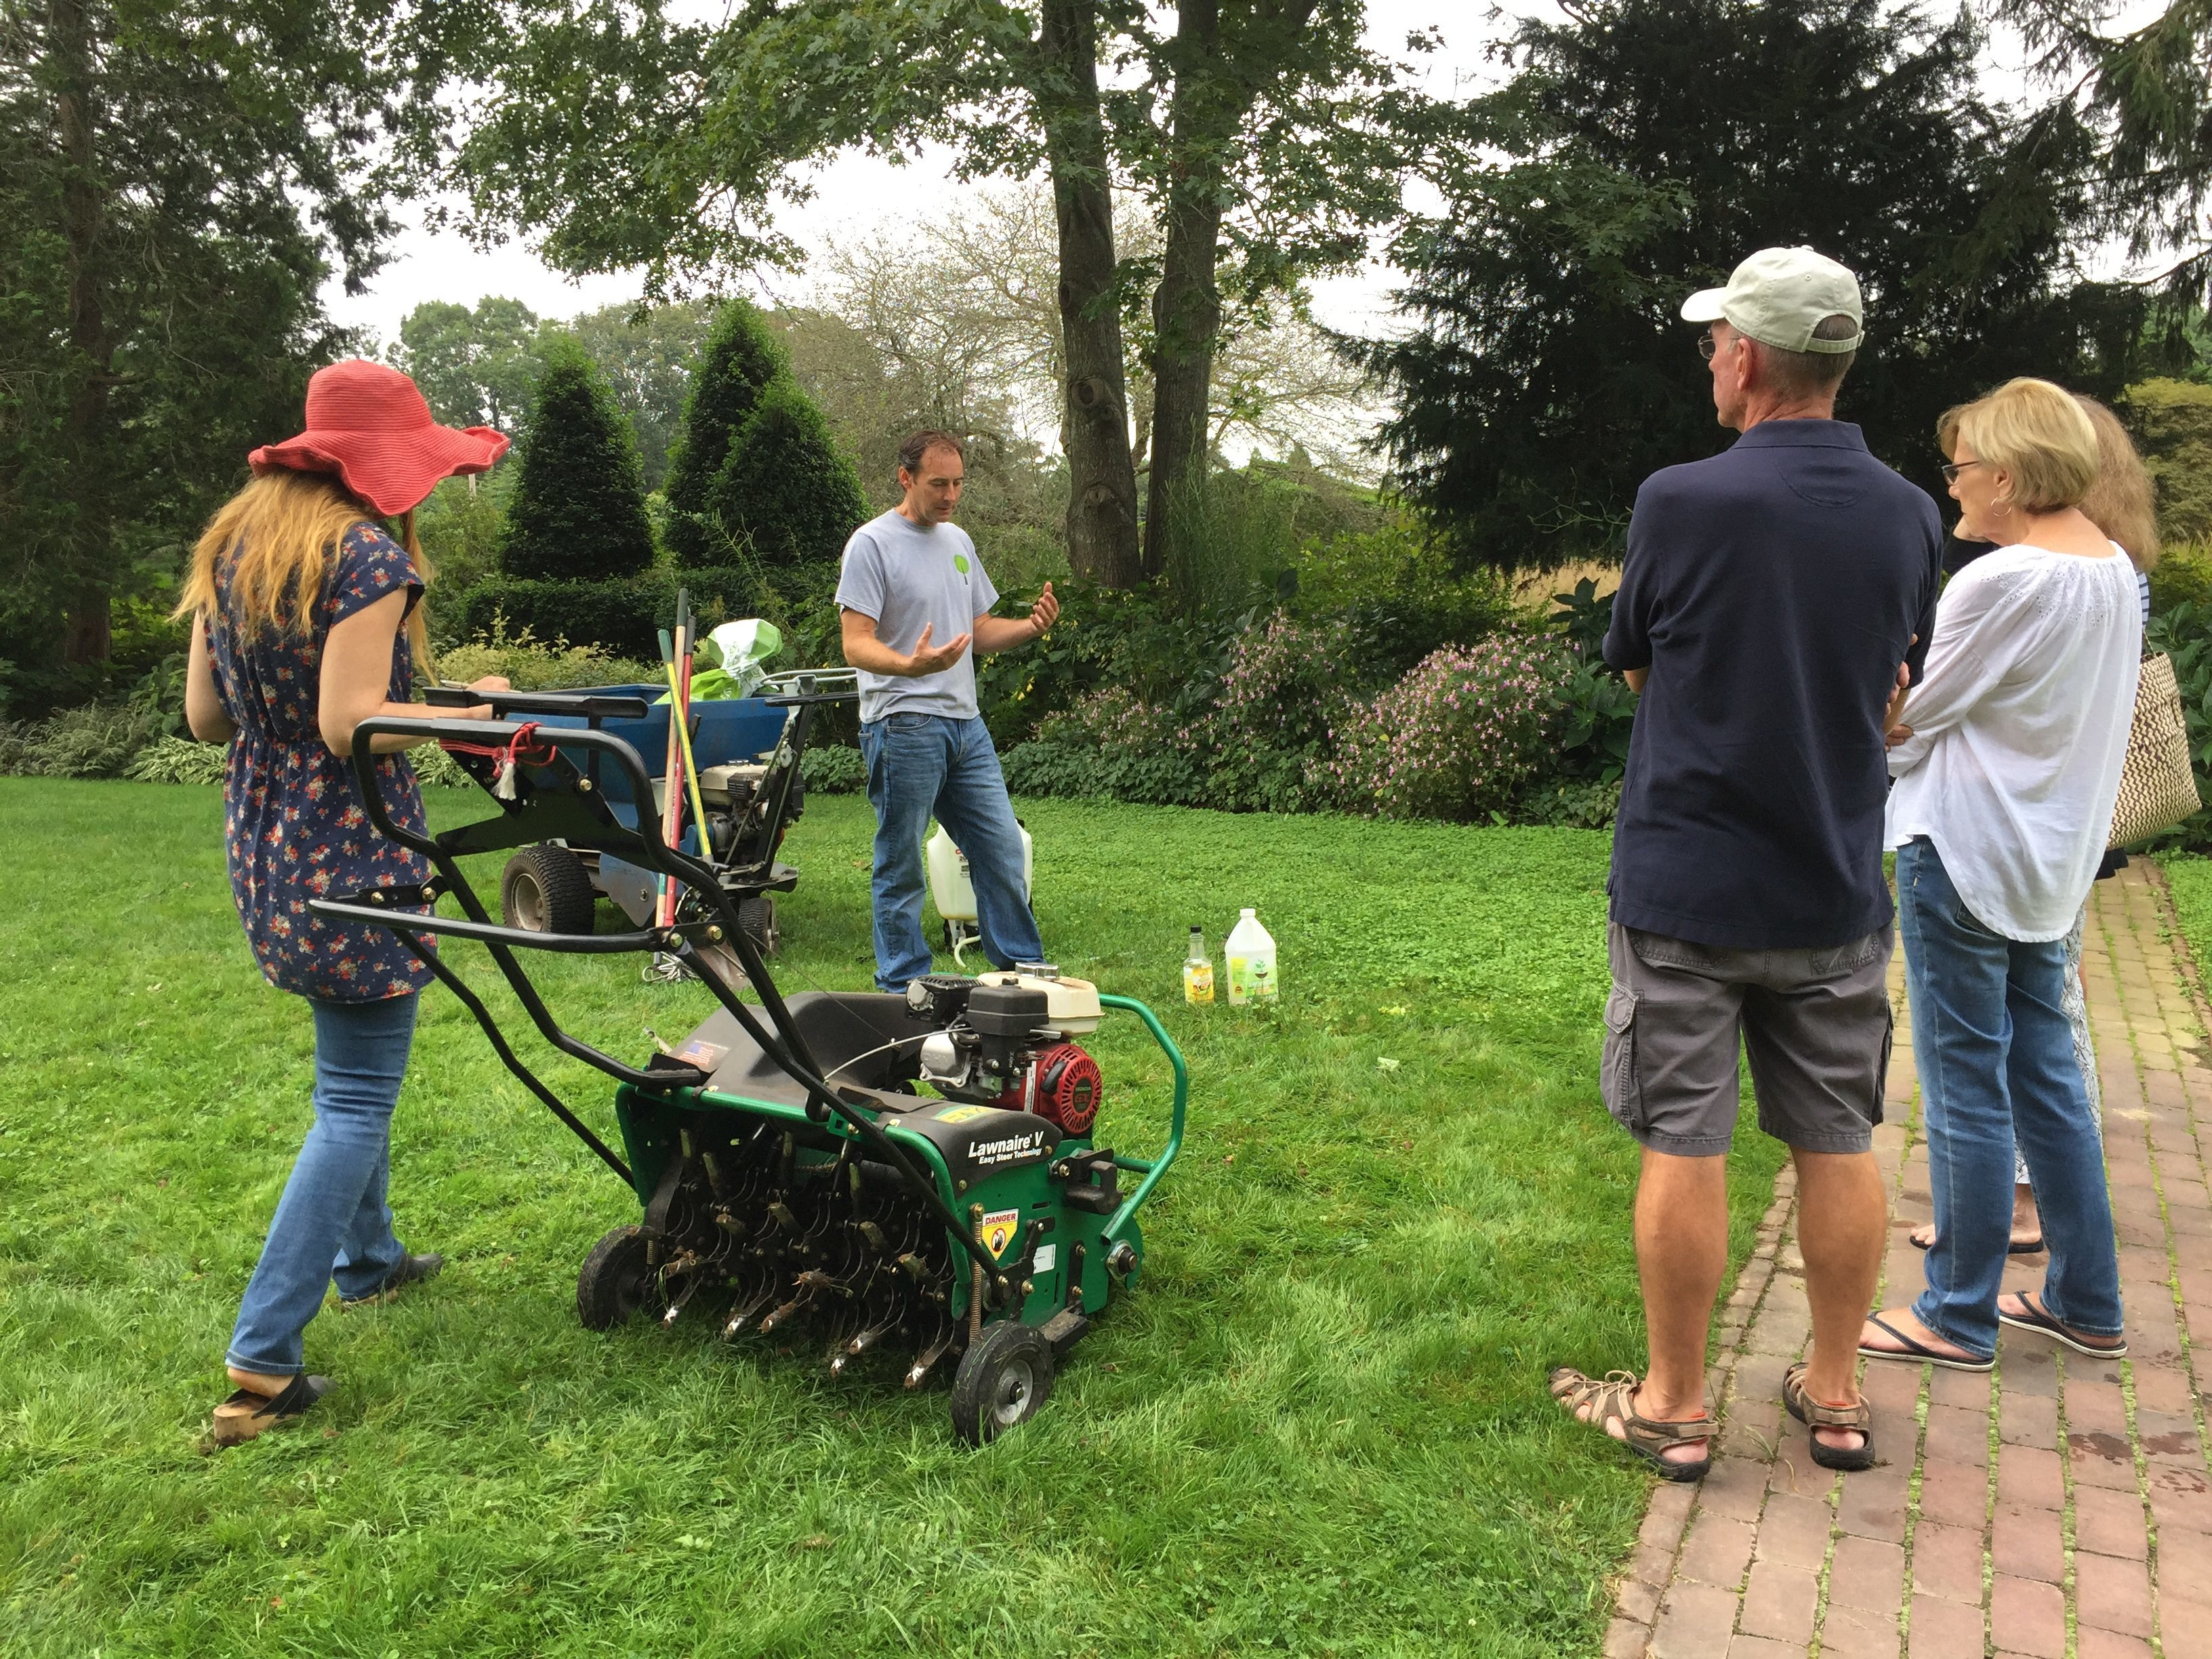 Paul Wagner demonstrating lawn care